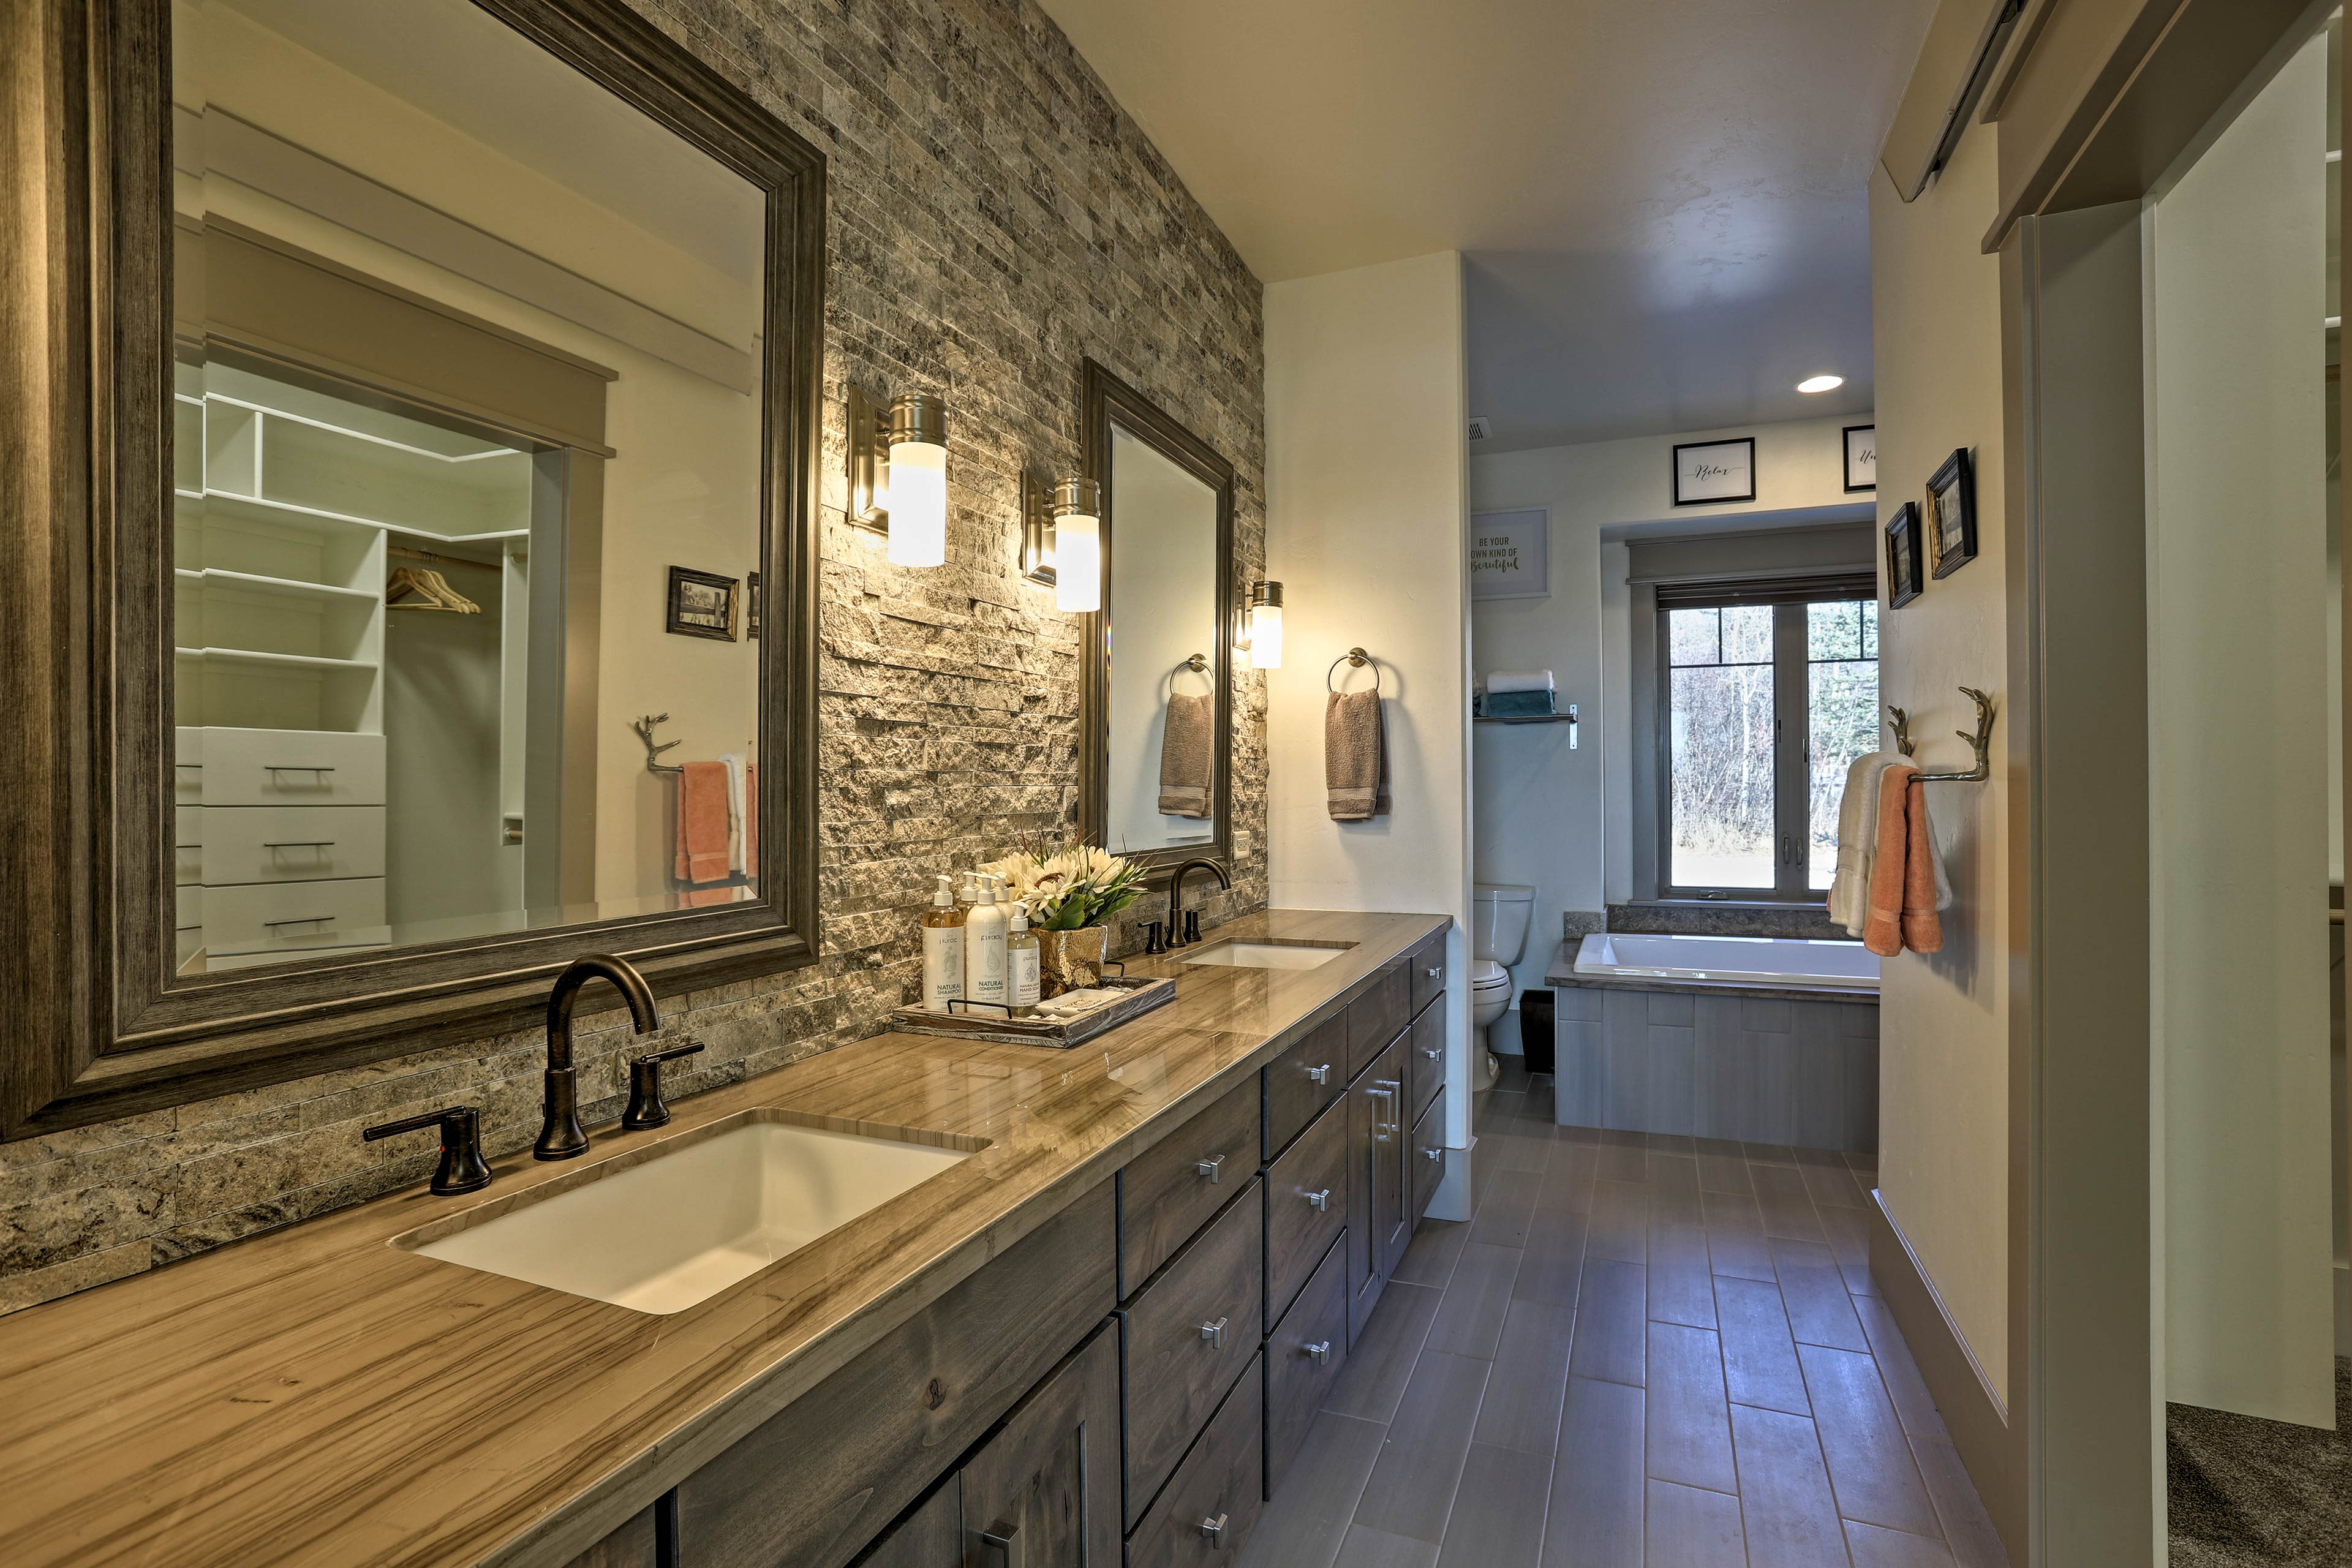 The master bedroom boasts an extensive double vanity for 2.